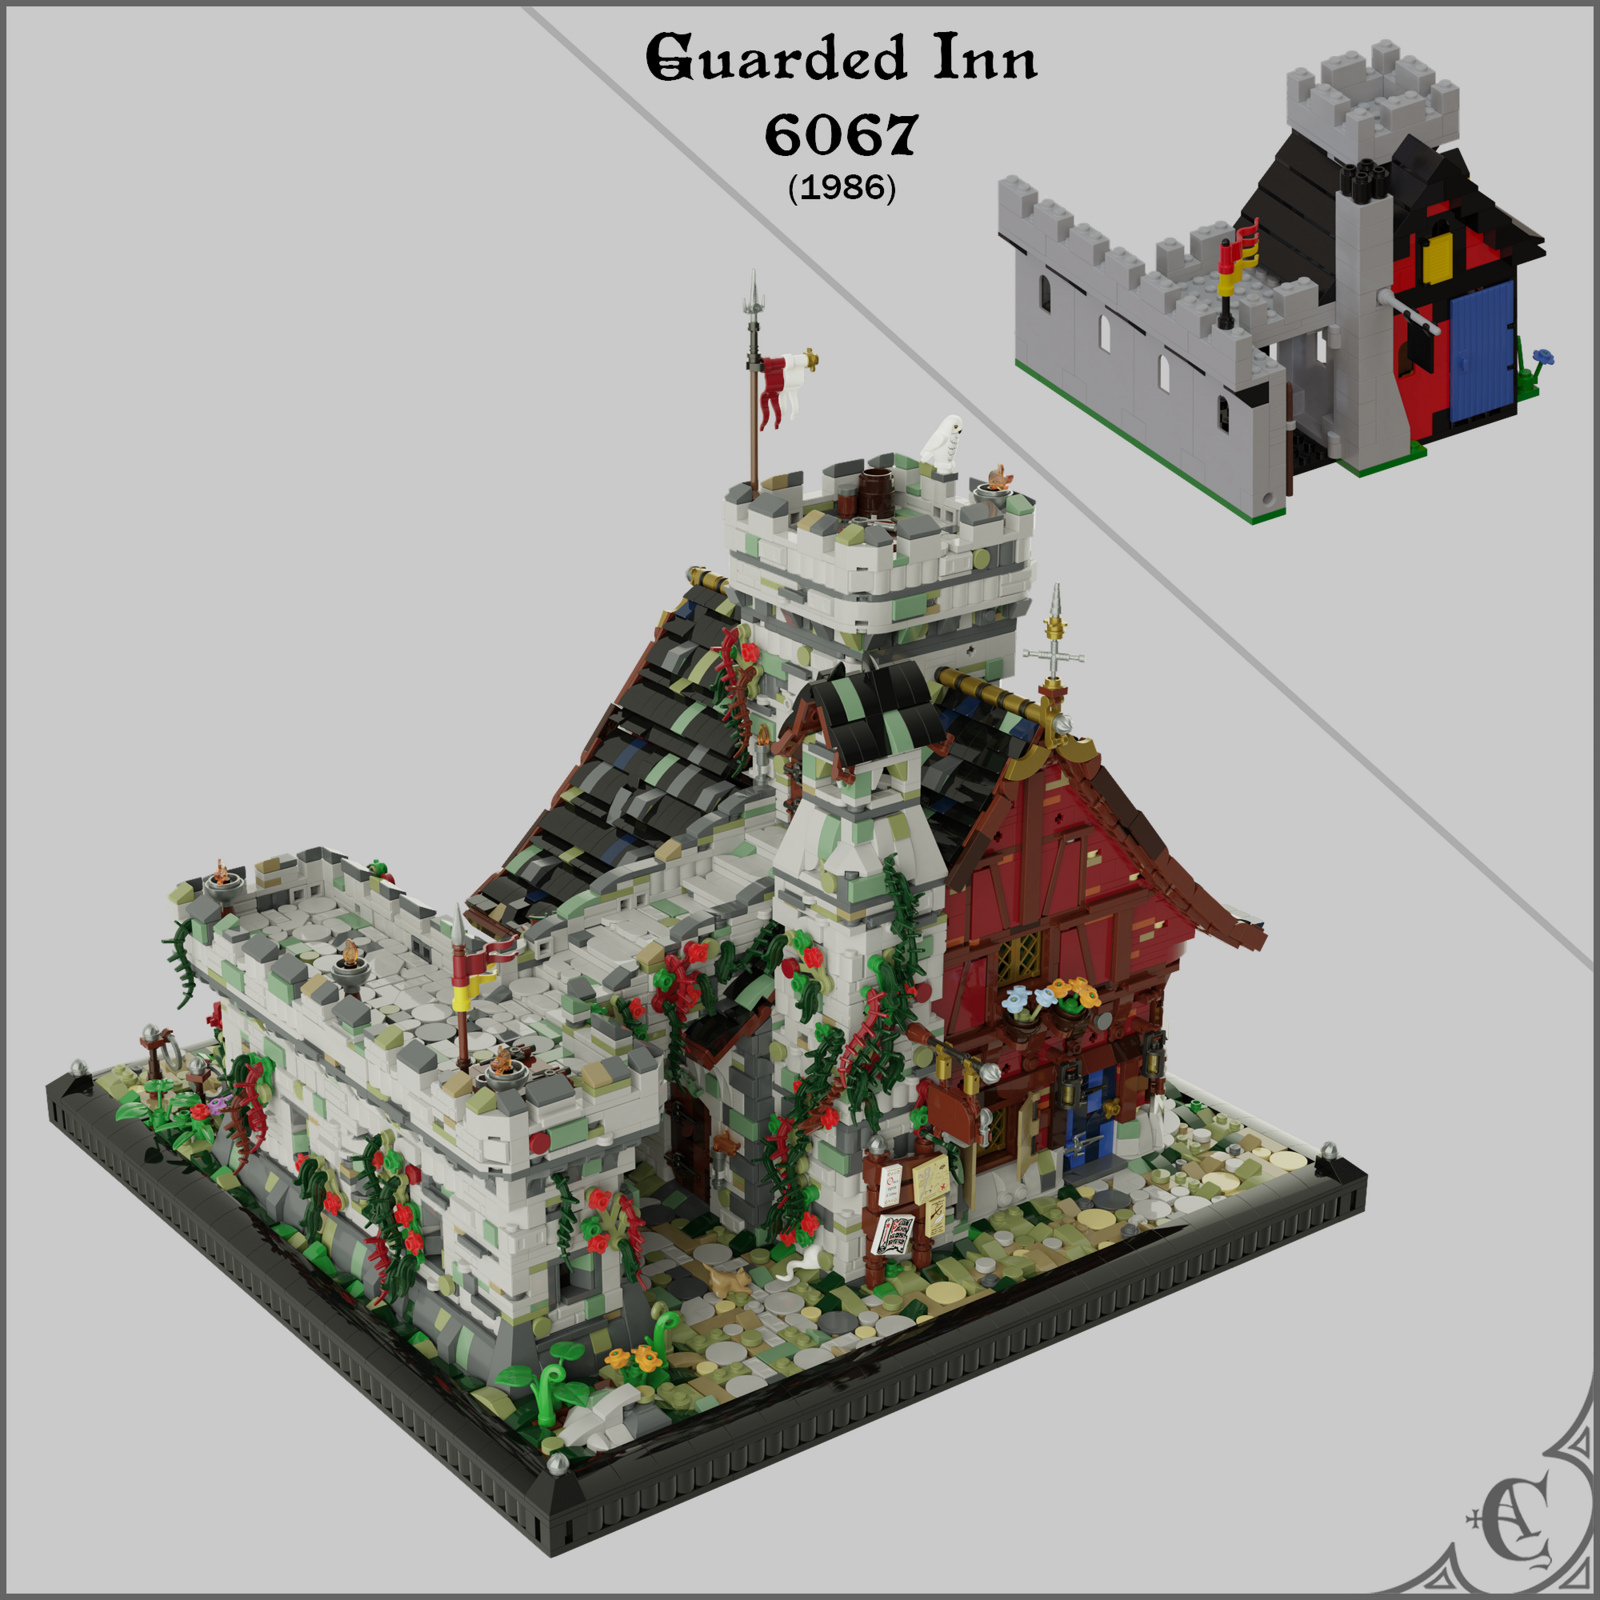 Guarded Inn 6067 Remastered - Comparision